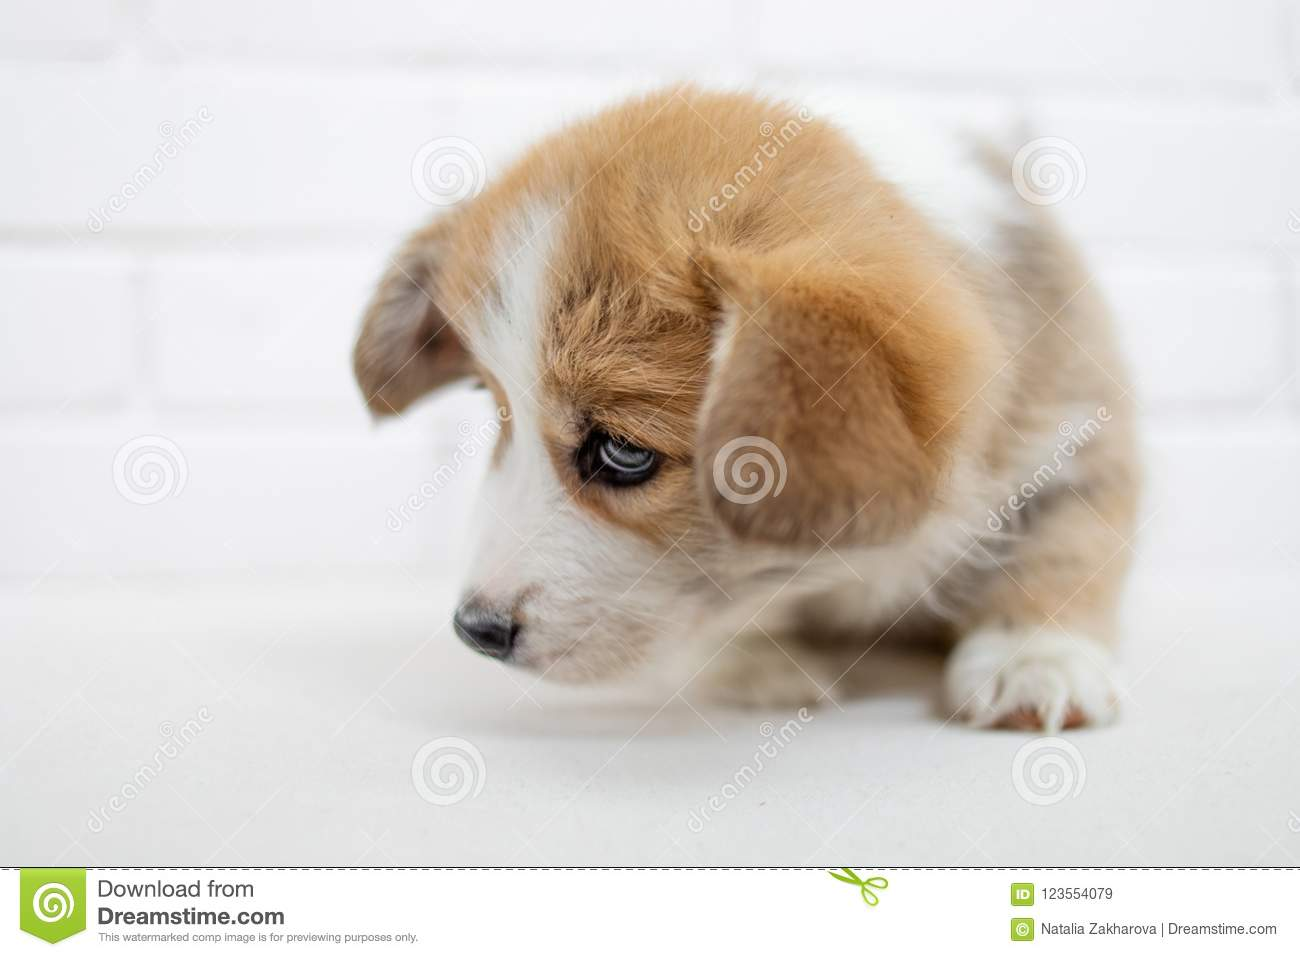 Small Cute Puppy Dog Is Looking Up Studio Shot Of An Adorable F Stock Image Image Of Bright Beautiful 123554079